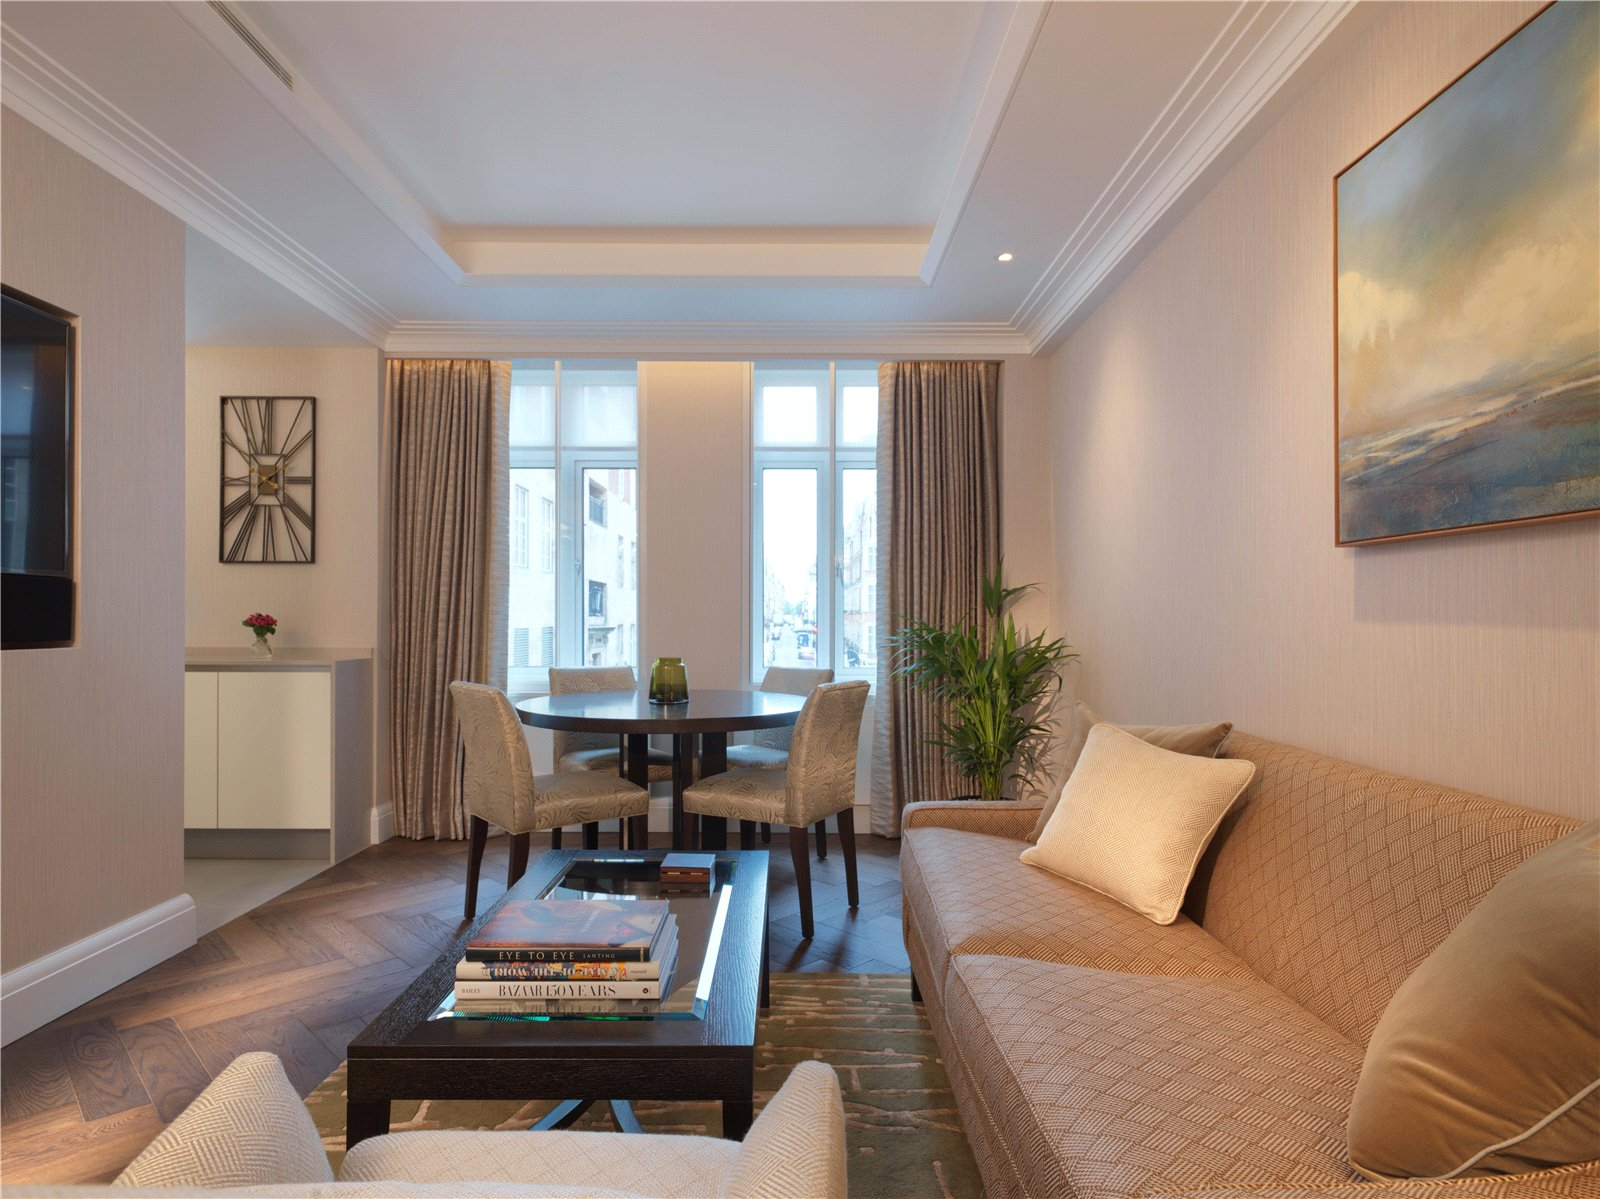 Apartments / Flats for Rent at Park Lane, Mayfair, London, W1K Park Lane, Mayfair, London, W1K